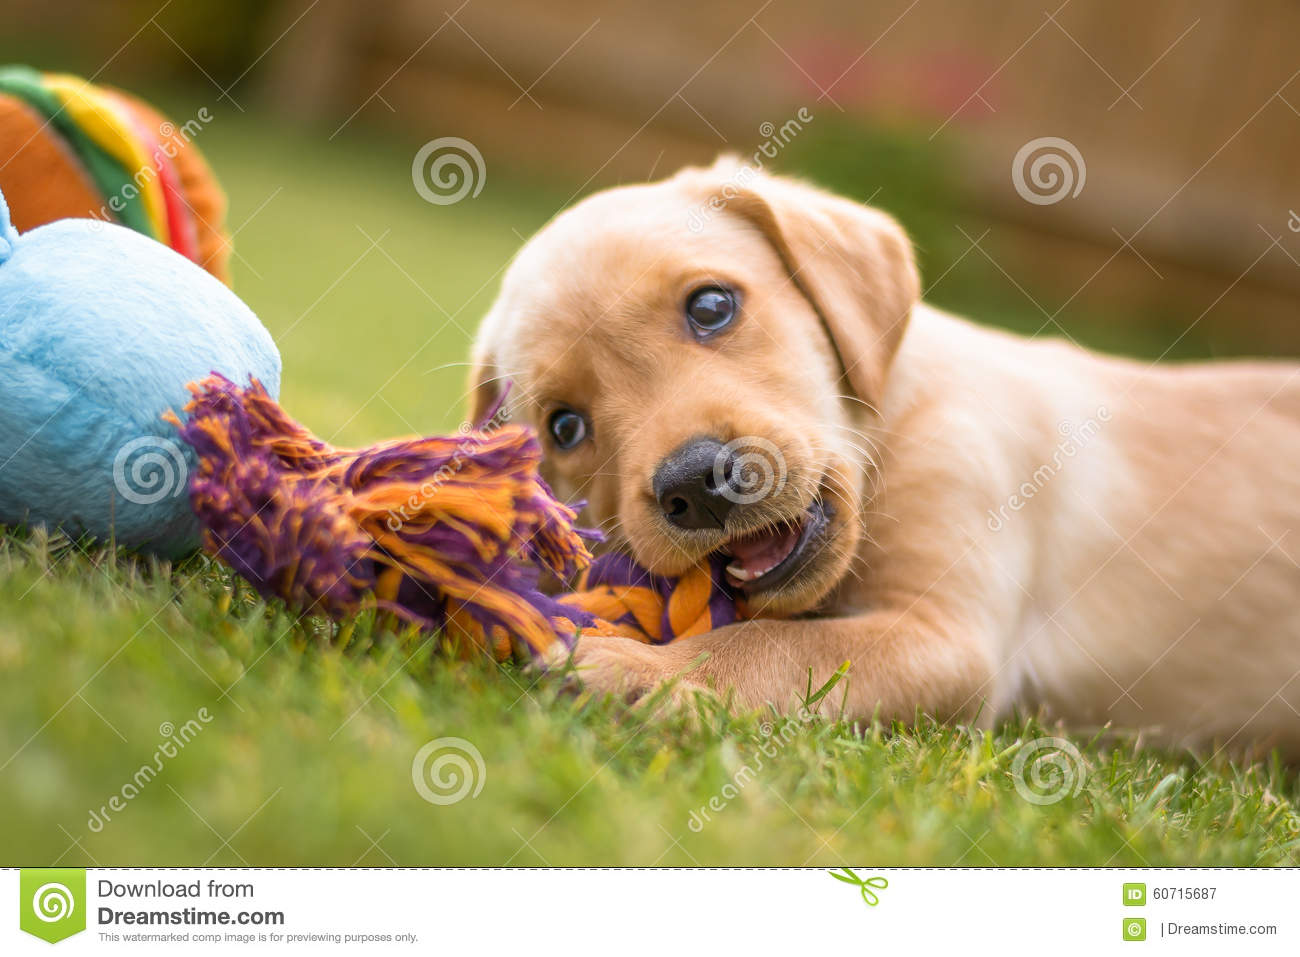 Cute Labrador puppy chewing toy